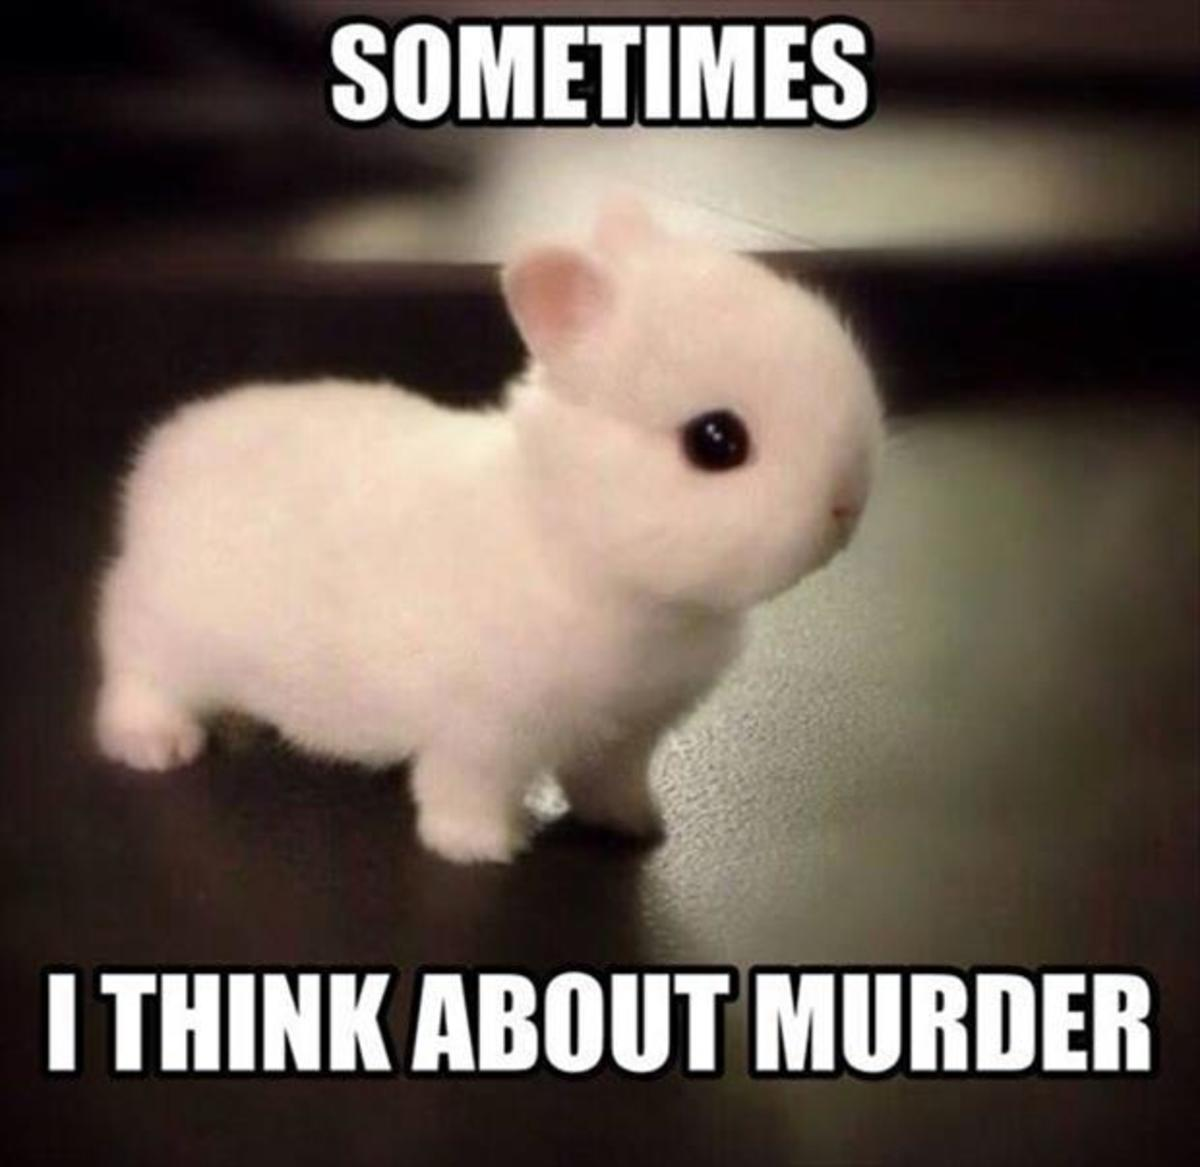 ....Bunnies have a lot of time on their paws!